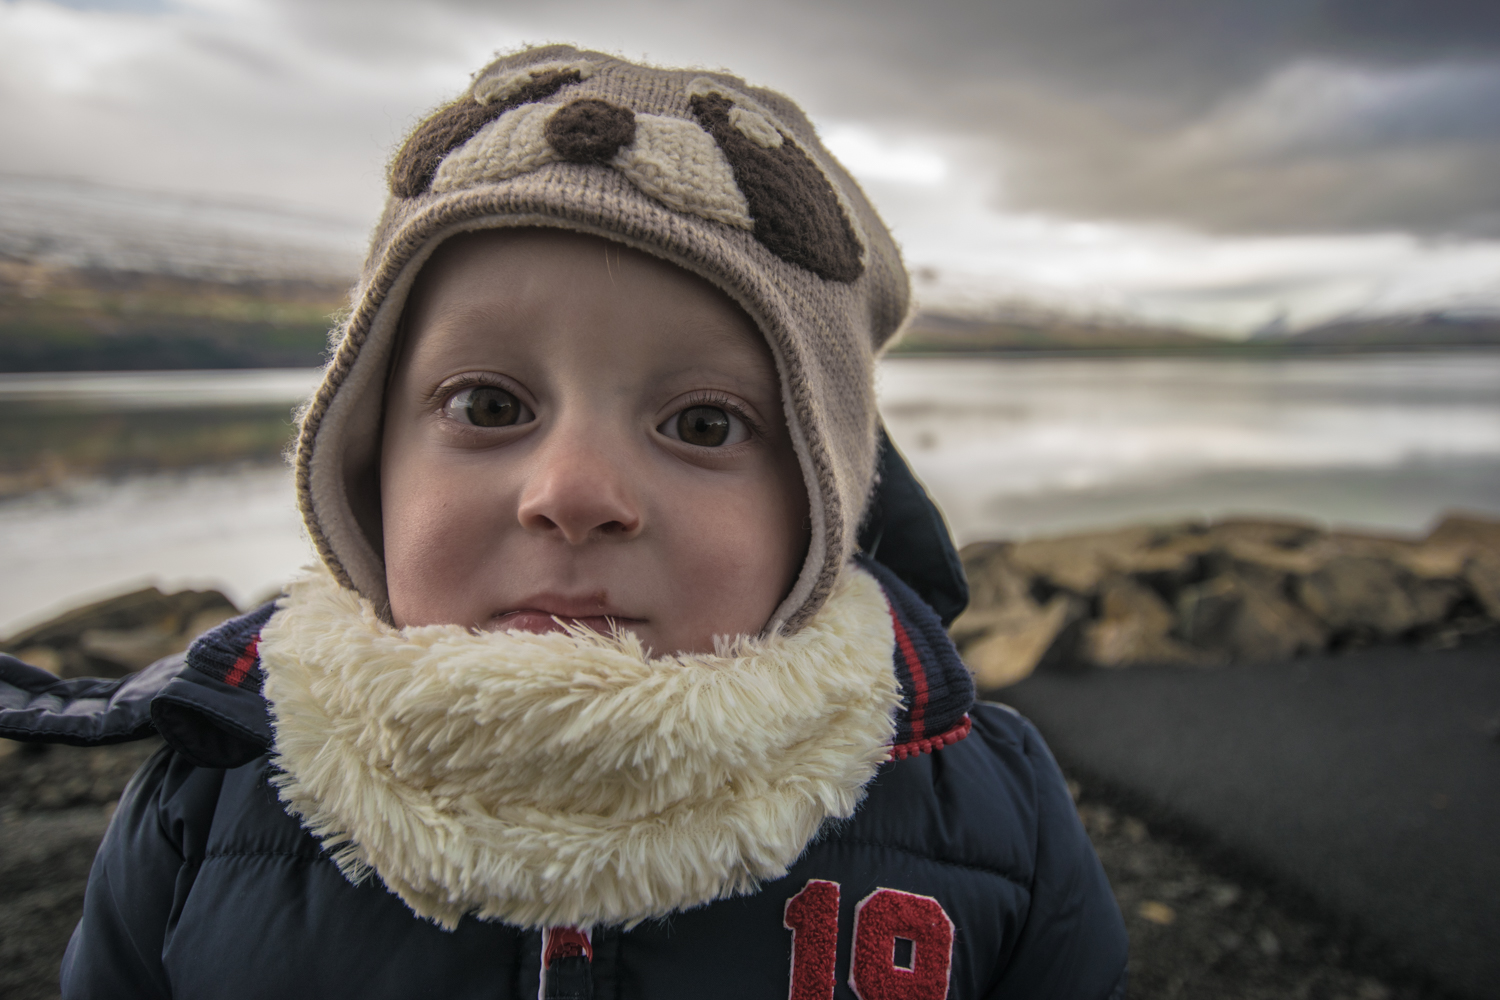 Iceland is amazing for kids of all ages